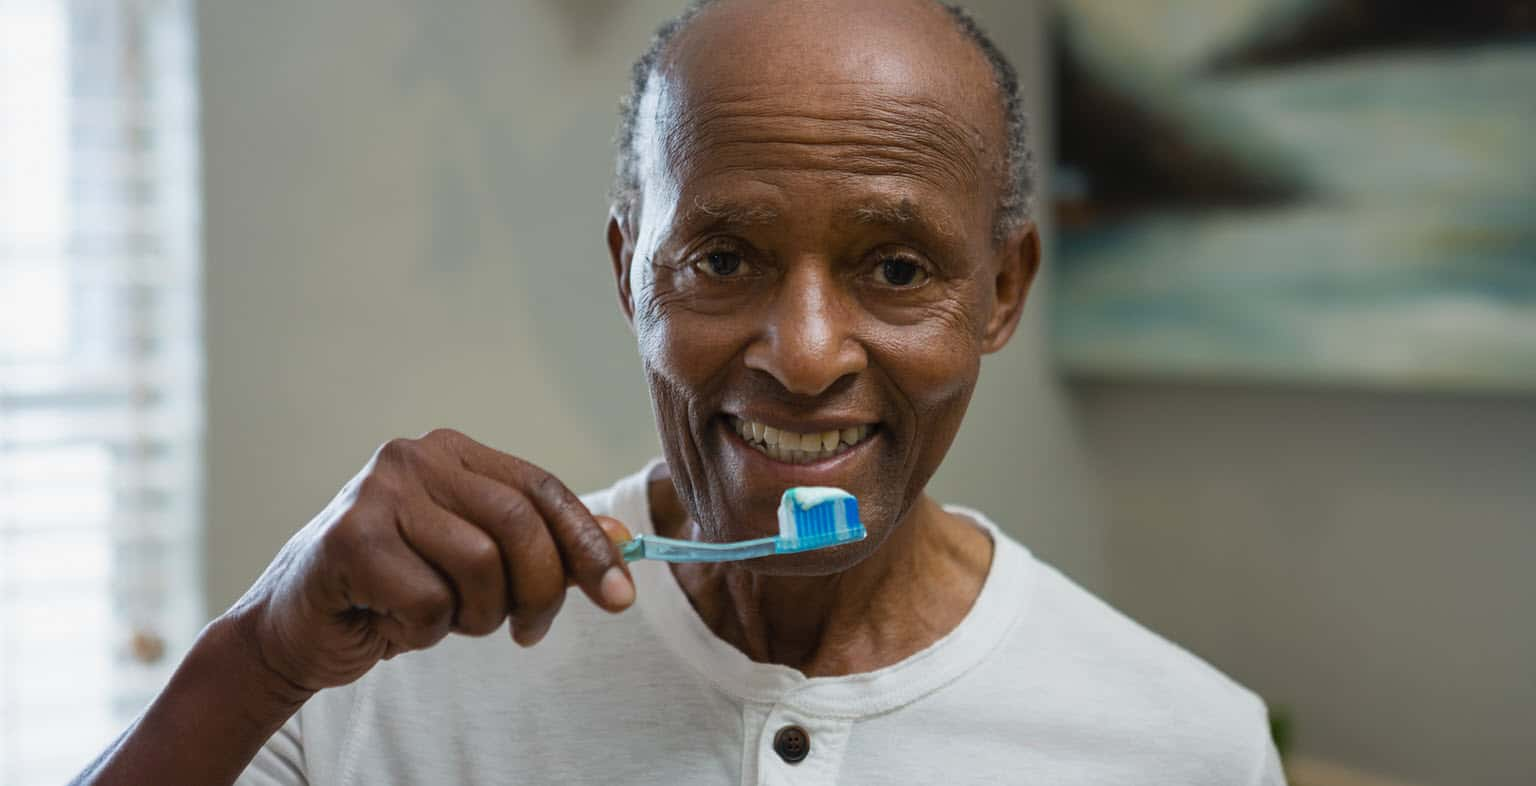 A senior Black man holds up a toothbrush as though he's ready to brush his teeth.